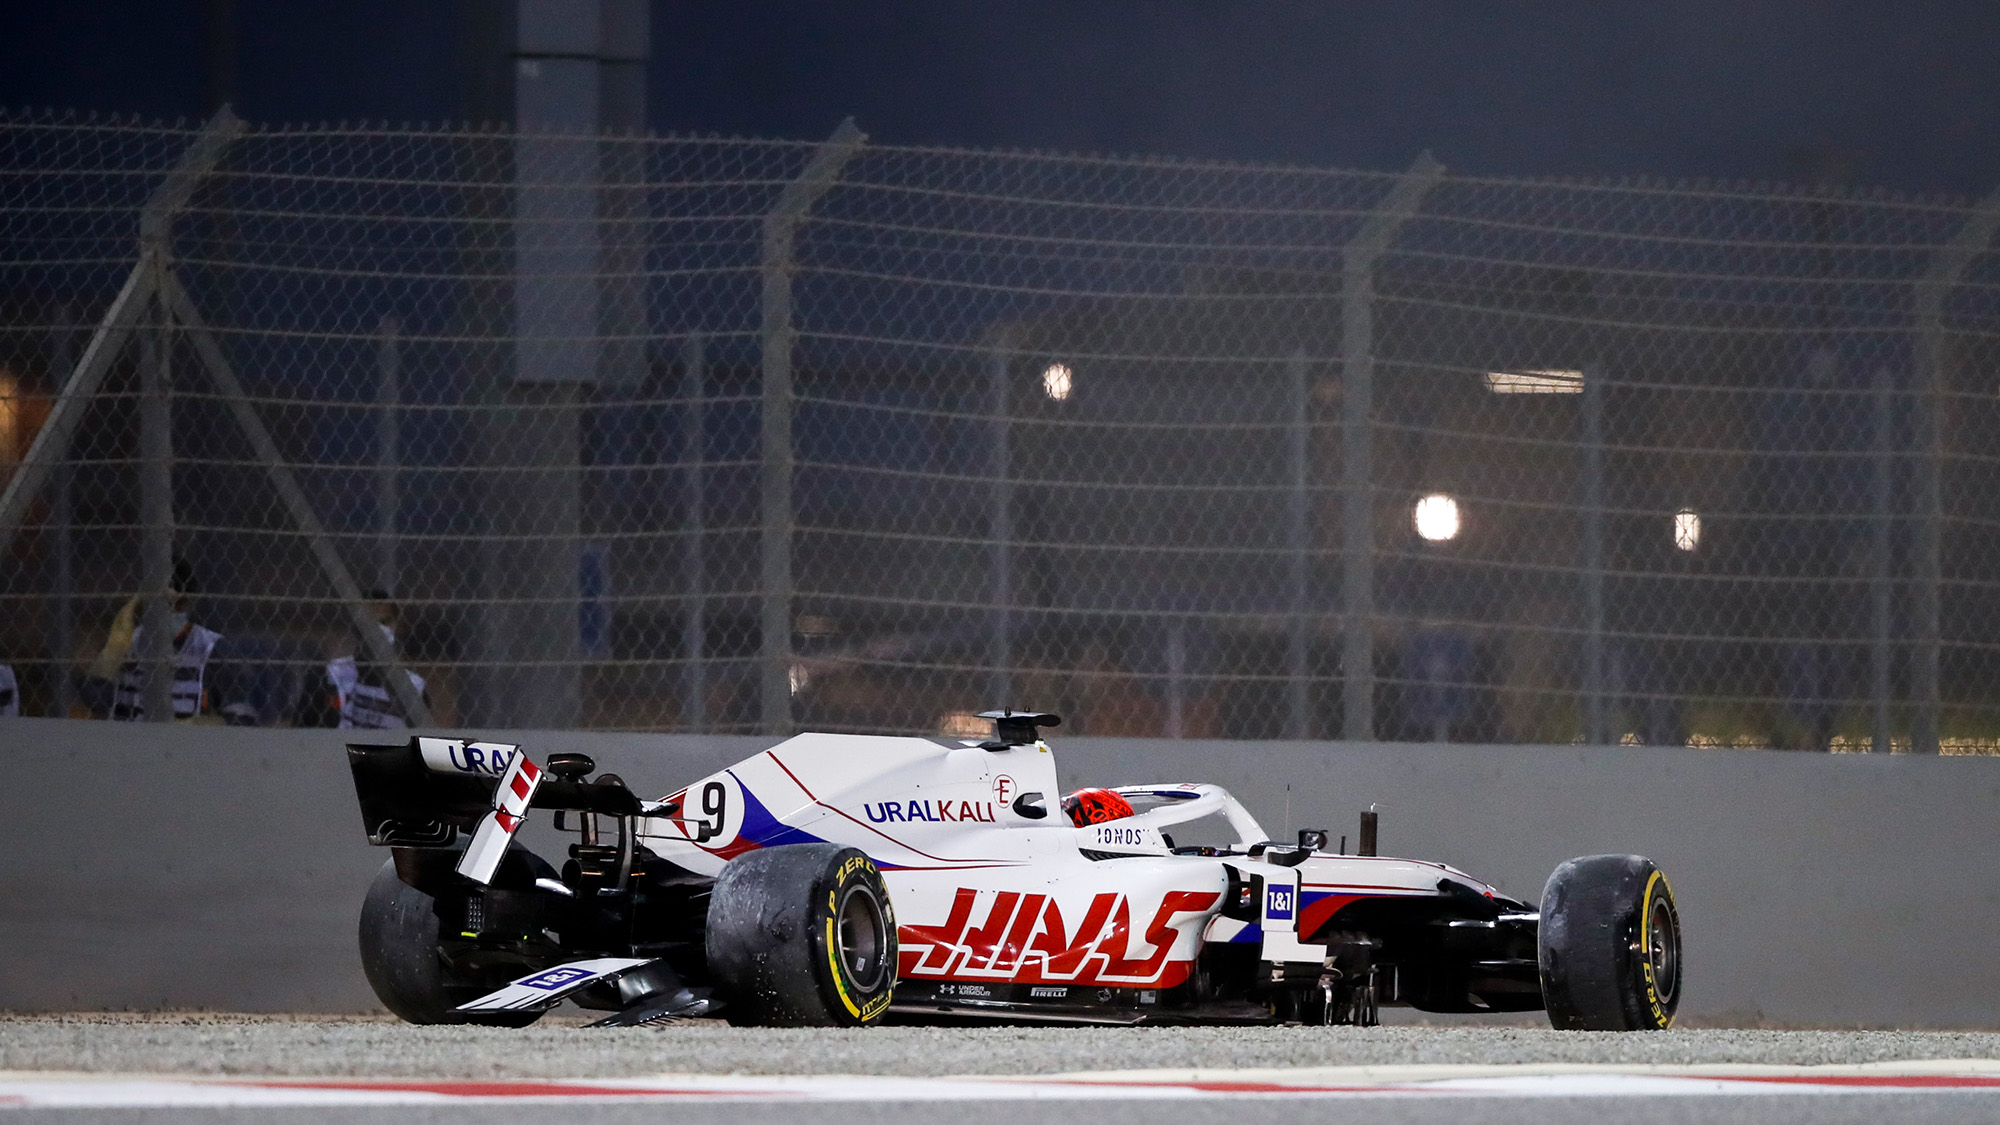 Haas of Nikita Mazepin after crashing at the start of the 2021 Bahrain Grand Prix